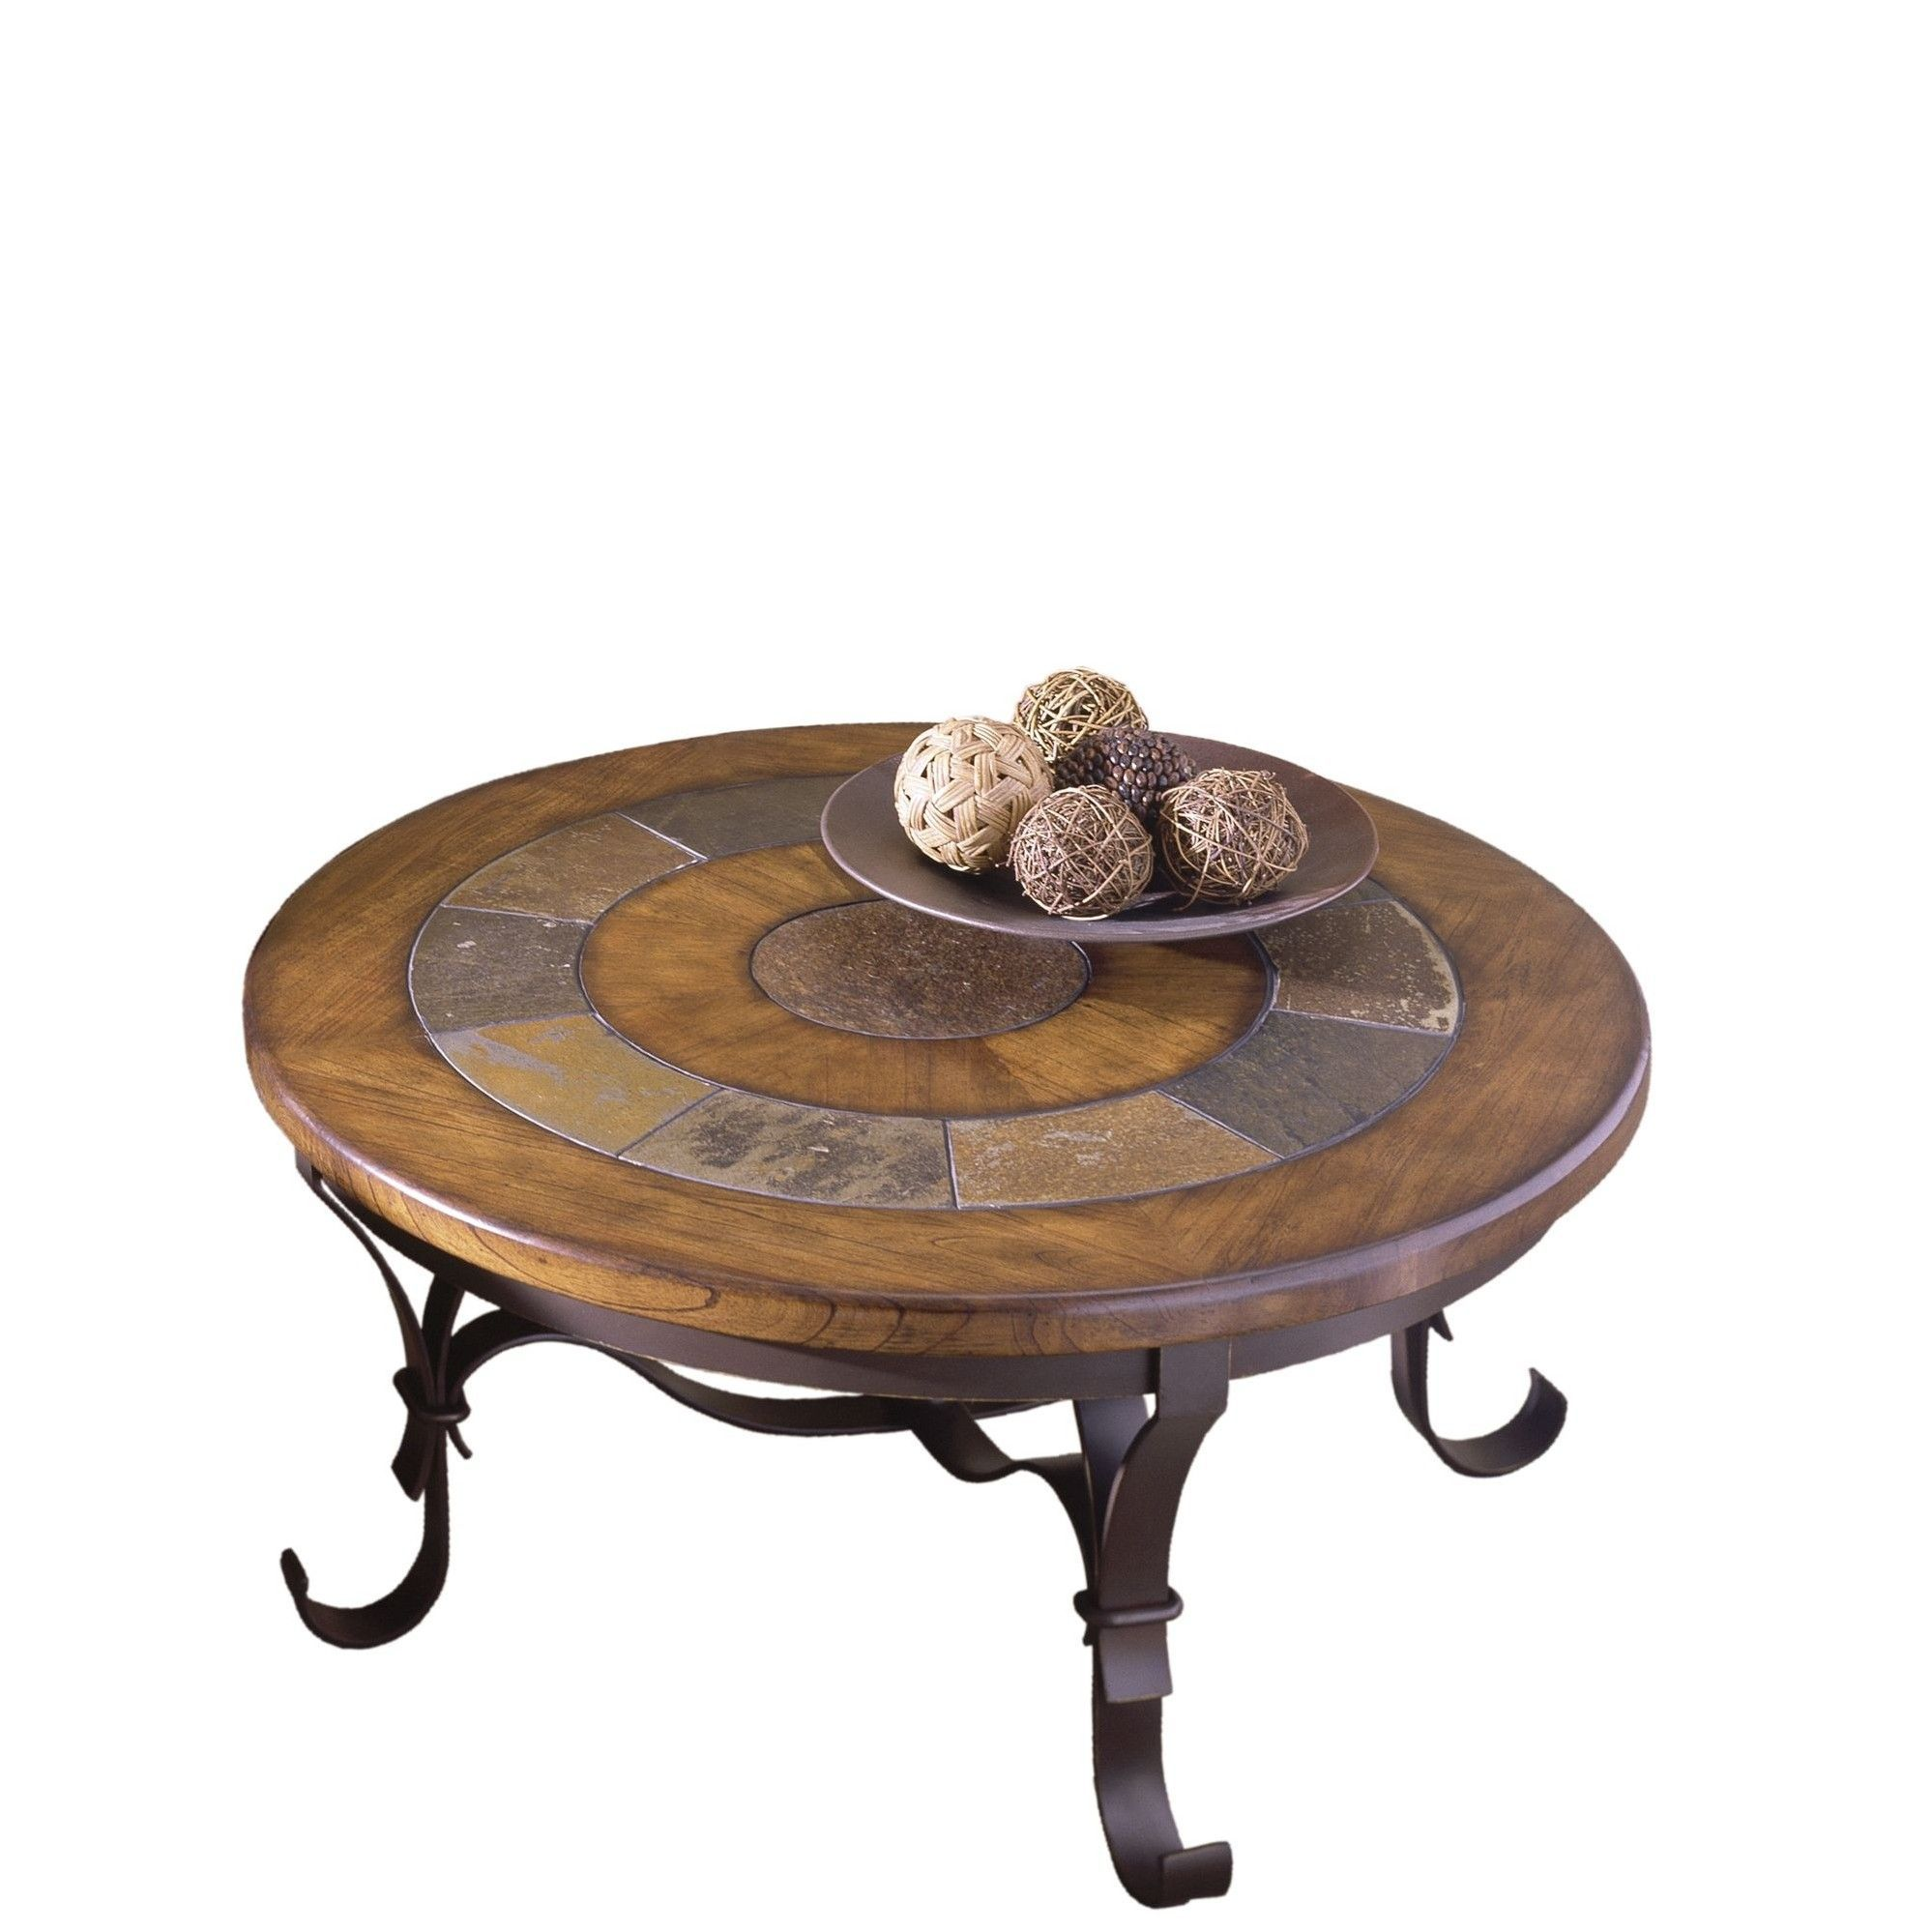 21+ Riverside stone forge round dining table set Best Seller